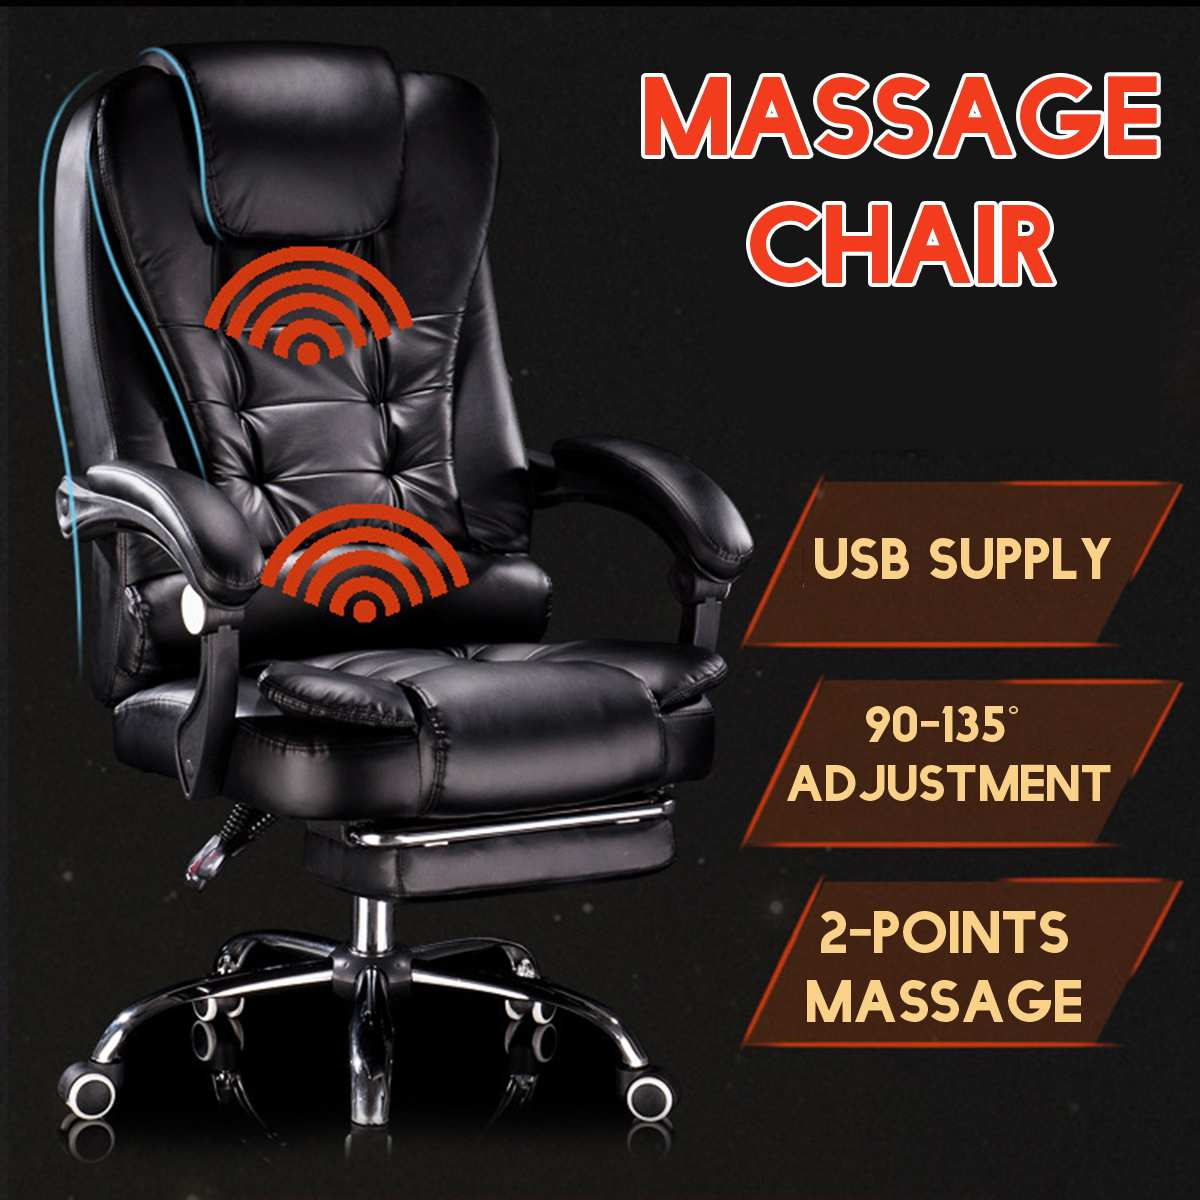 High Quality Office Chairs Ergonomic Leather Computer Gaming Chair Internet Cafe Seat Household Reclining Chair Free Shipping Buy At The Price Of 268 94 In Aliexpress Com Imall Com